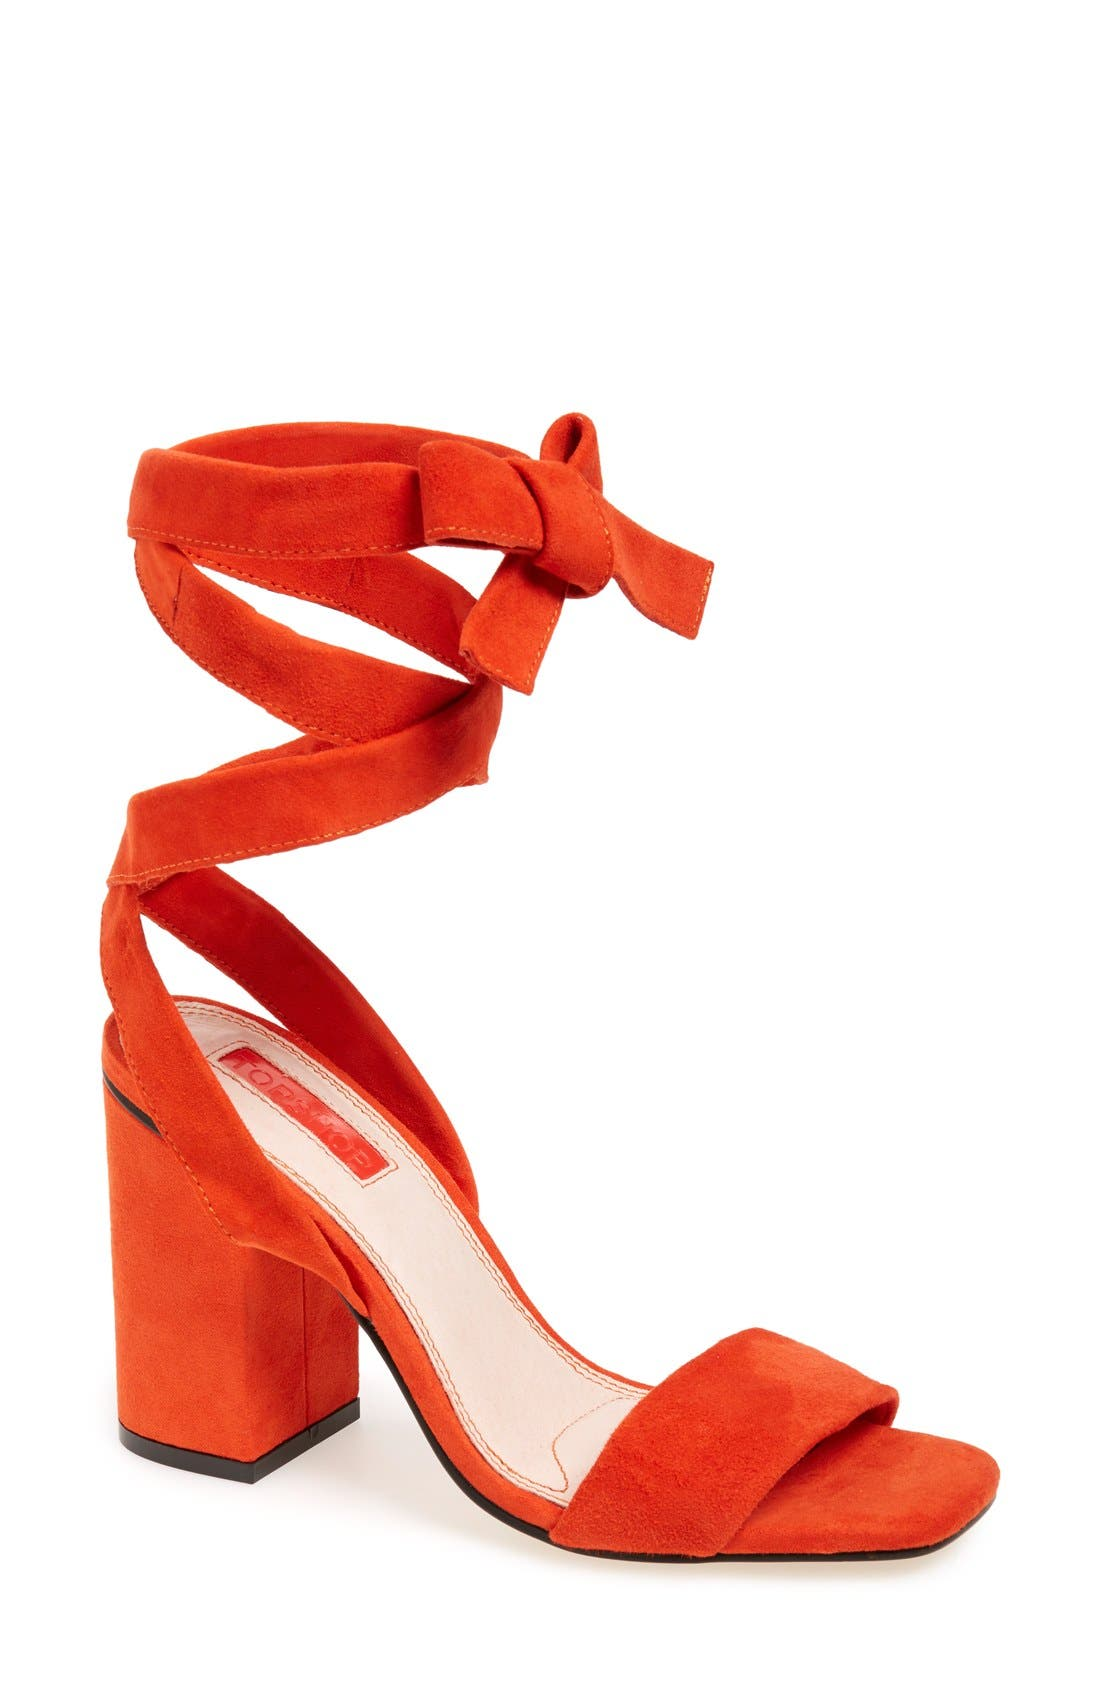 Main Image - Topshop 'Rapping' Ankle Strap Sandal (Women)